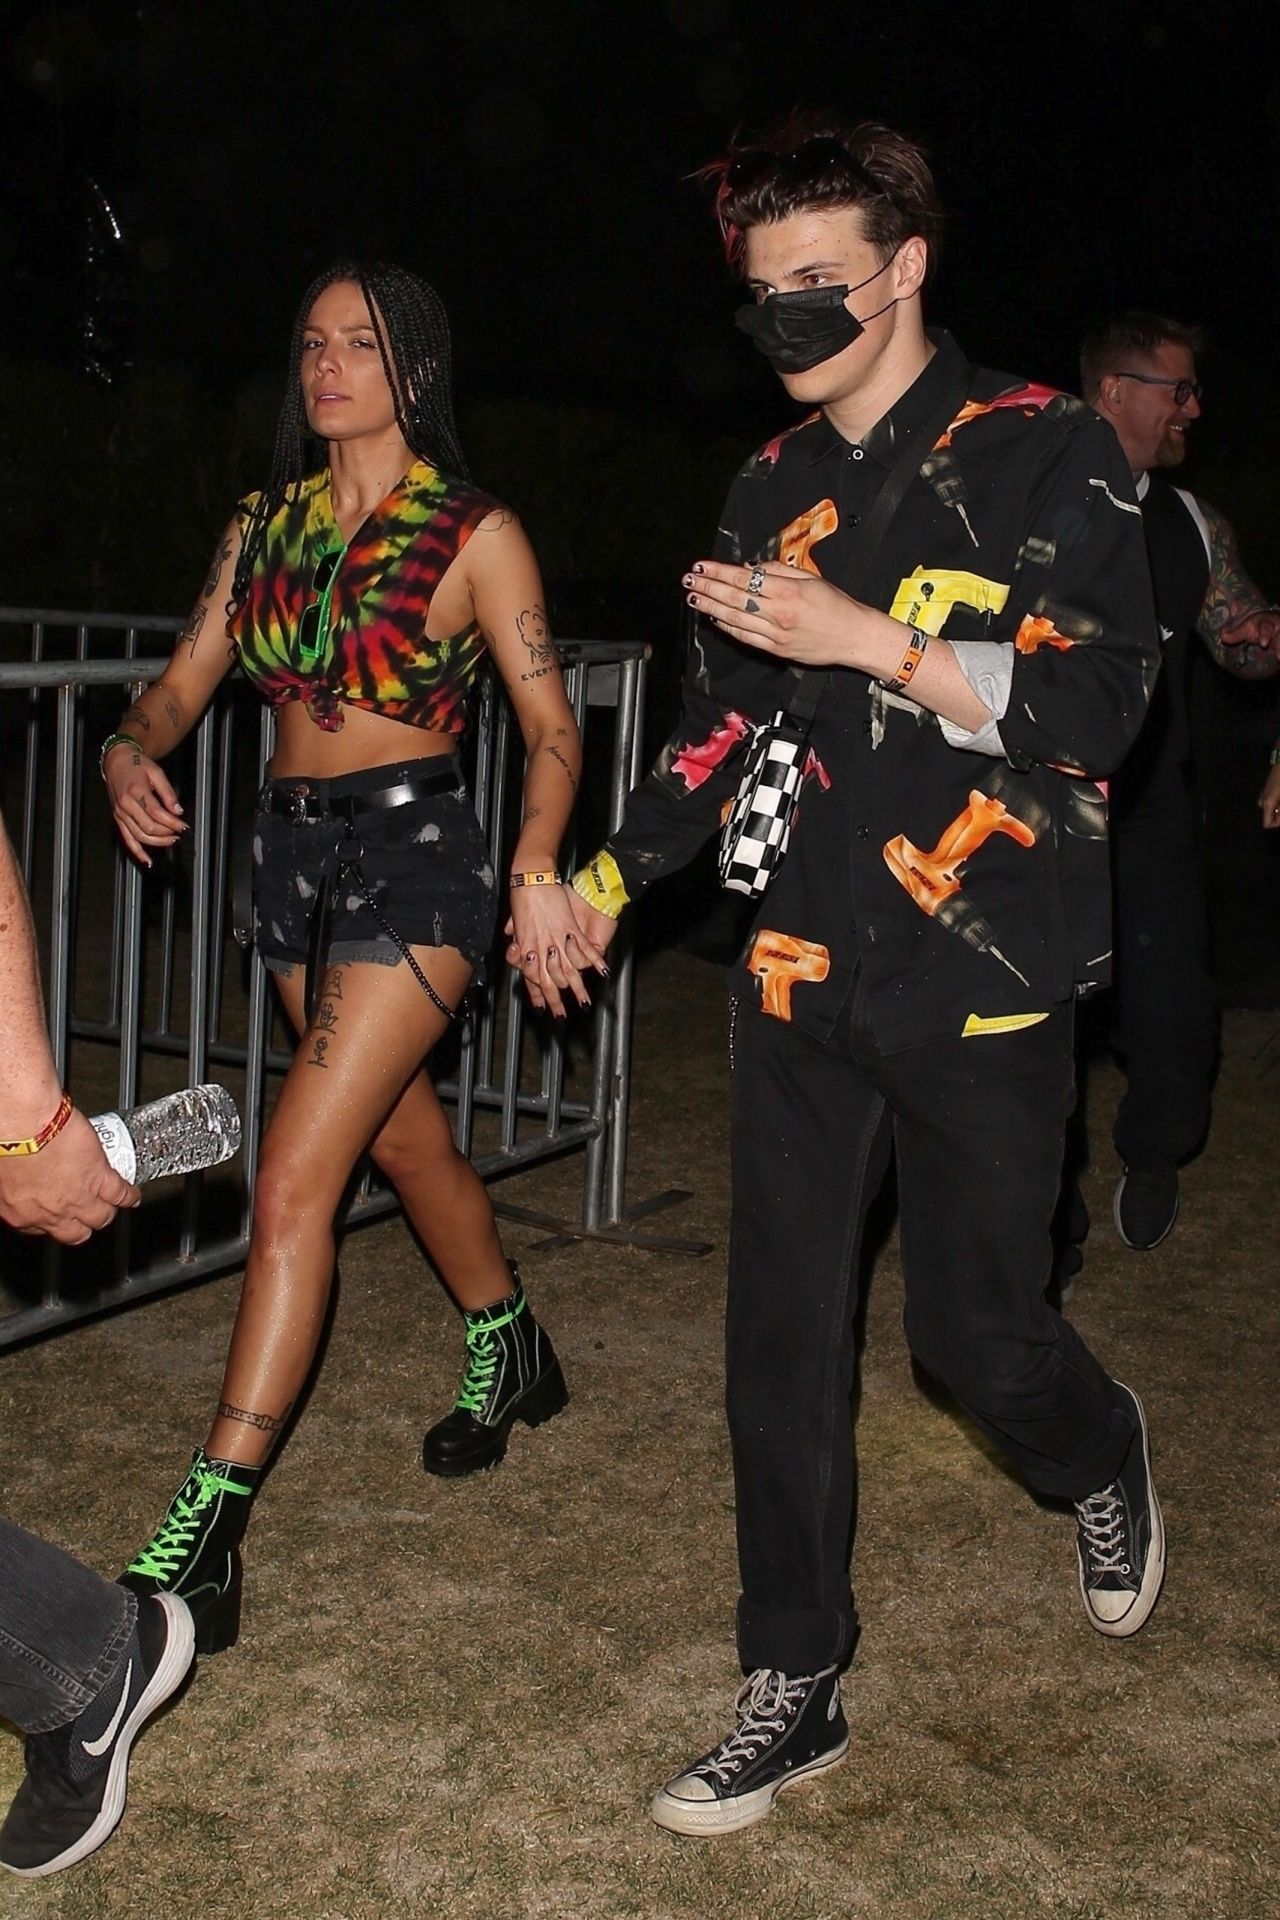 Halsey And Yungblud At The Coachella 04 12 2019